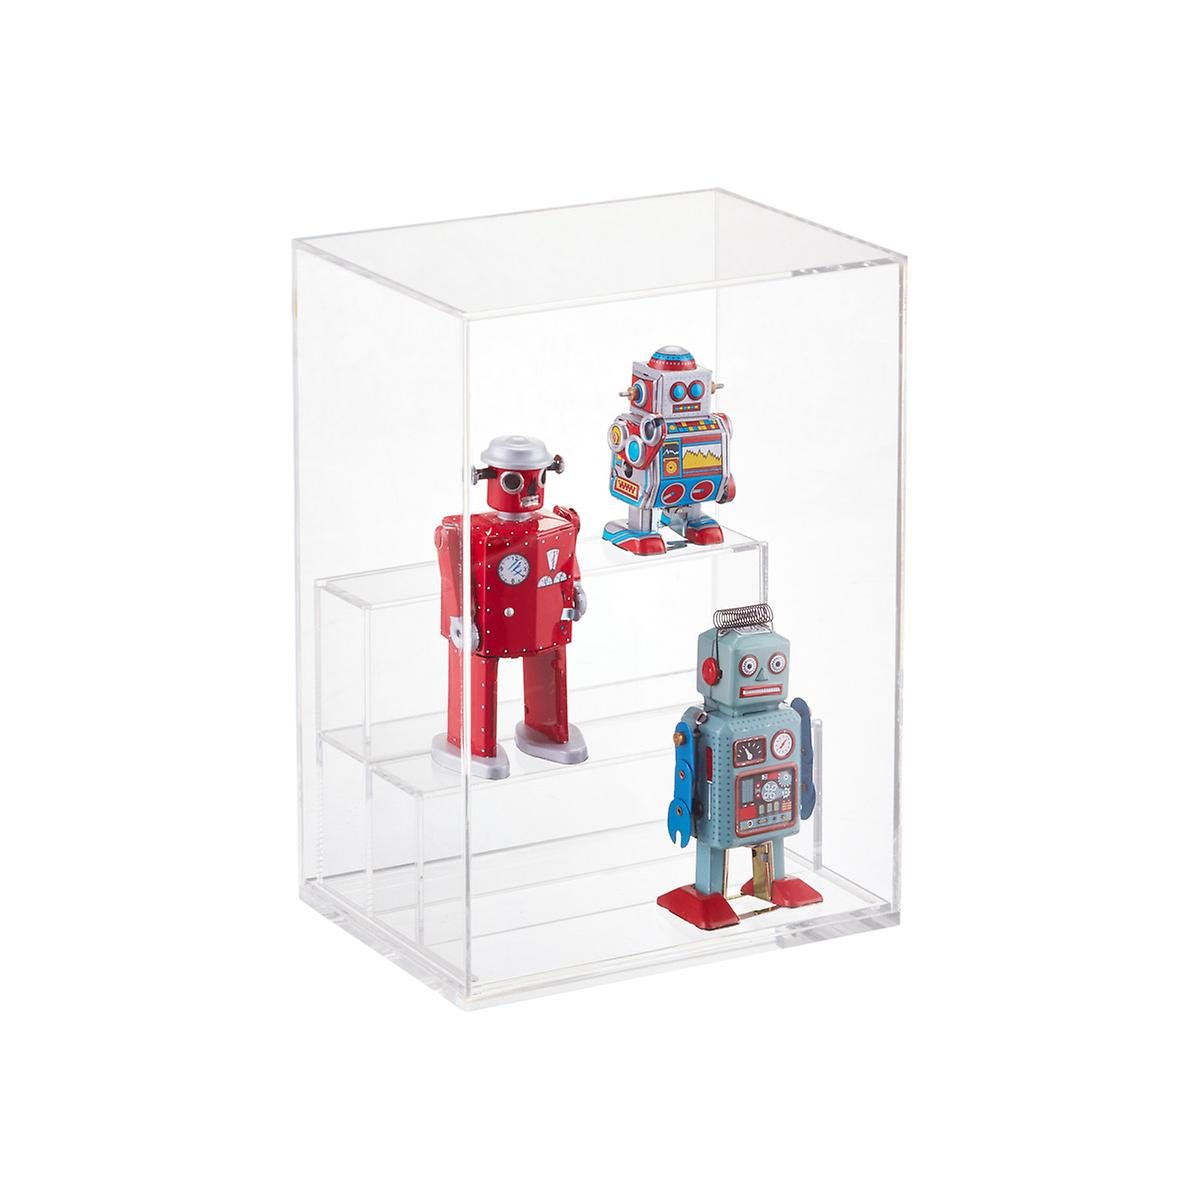 Small Modular Acrylic Premium Display Case The Container Store